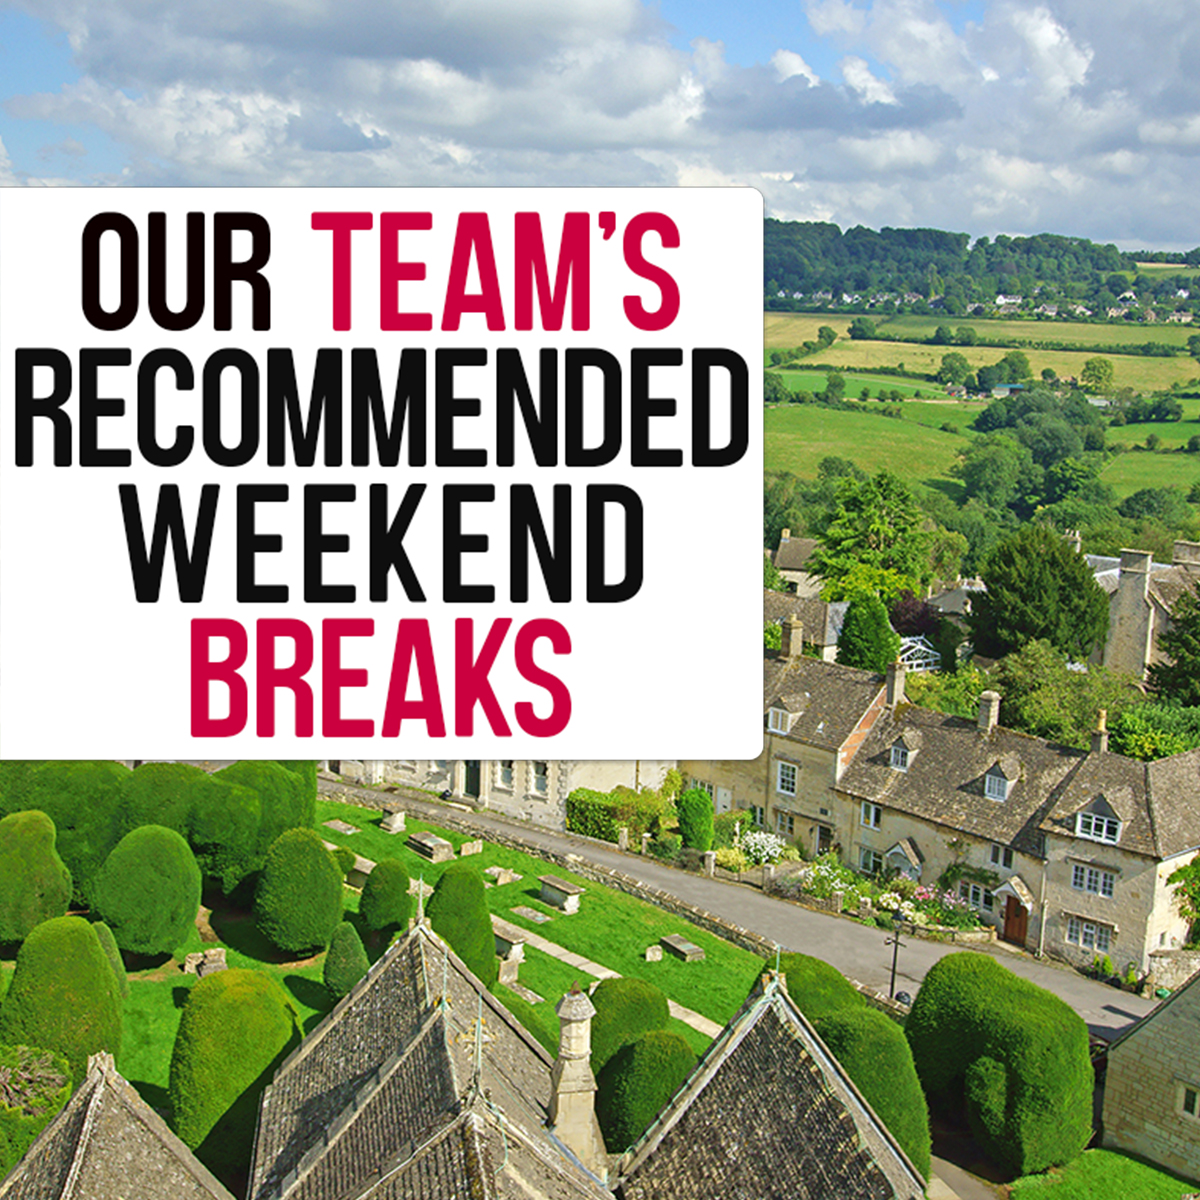 Our Team's Recommended Weekend Breaks